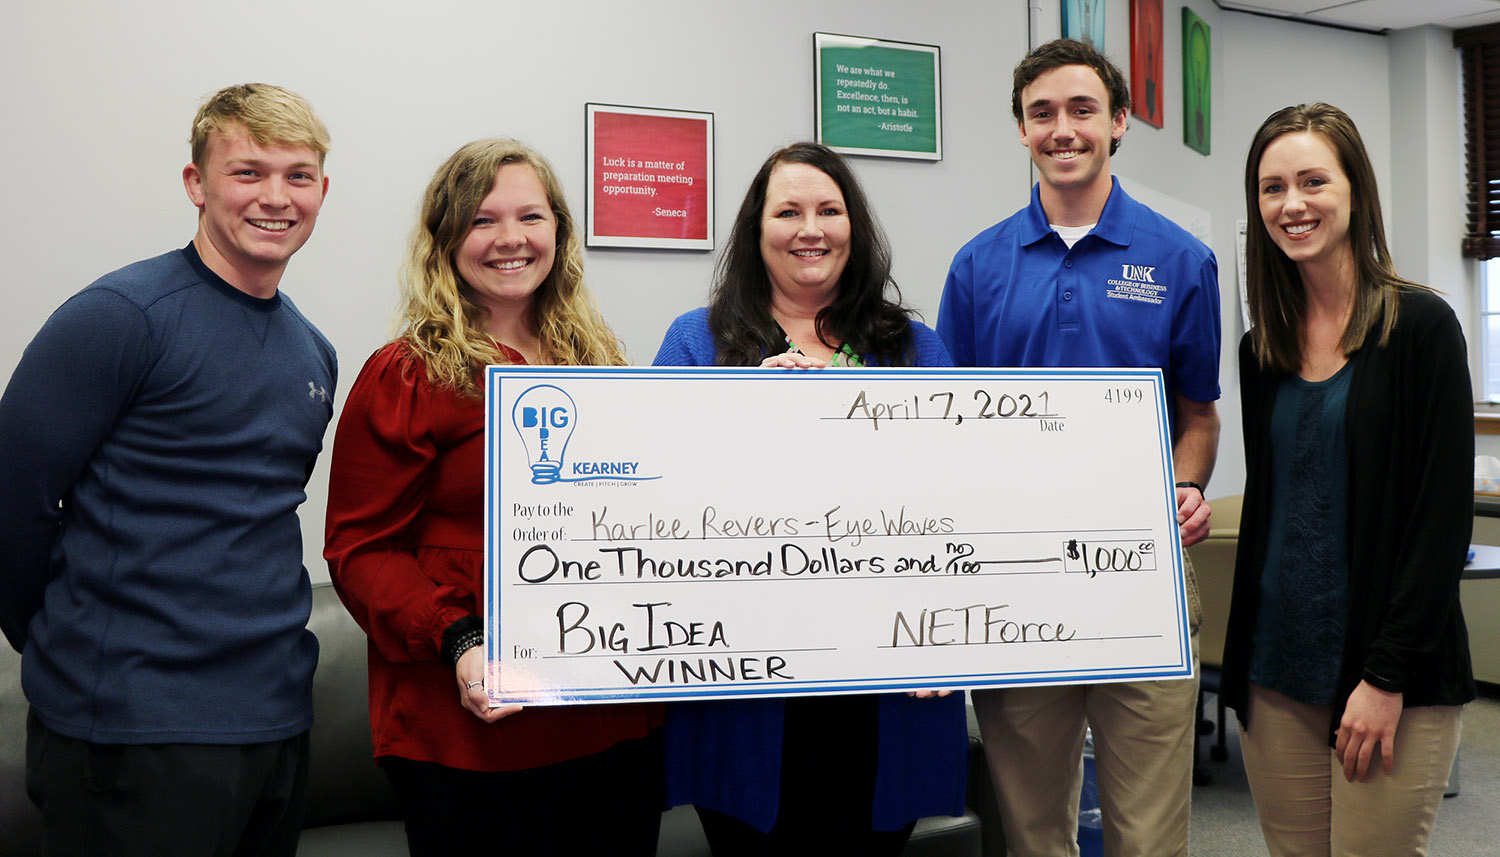 Fifty students from across the state participated in the Big Idea Nebraska High School Competition organized by the University of Nebraska at Kearney's Center for Entrepreneurship and Rural Development. Members of the Center for Entrepreneurship and Rural Development team are, from left, student employee Max Revers, graduate assistant Samantha Dennison, Director Lisa Tschauner, student ambassador Justin Vrooman and Assistant Director Aliese Hoffman.